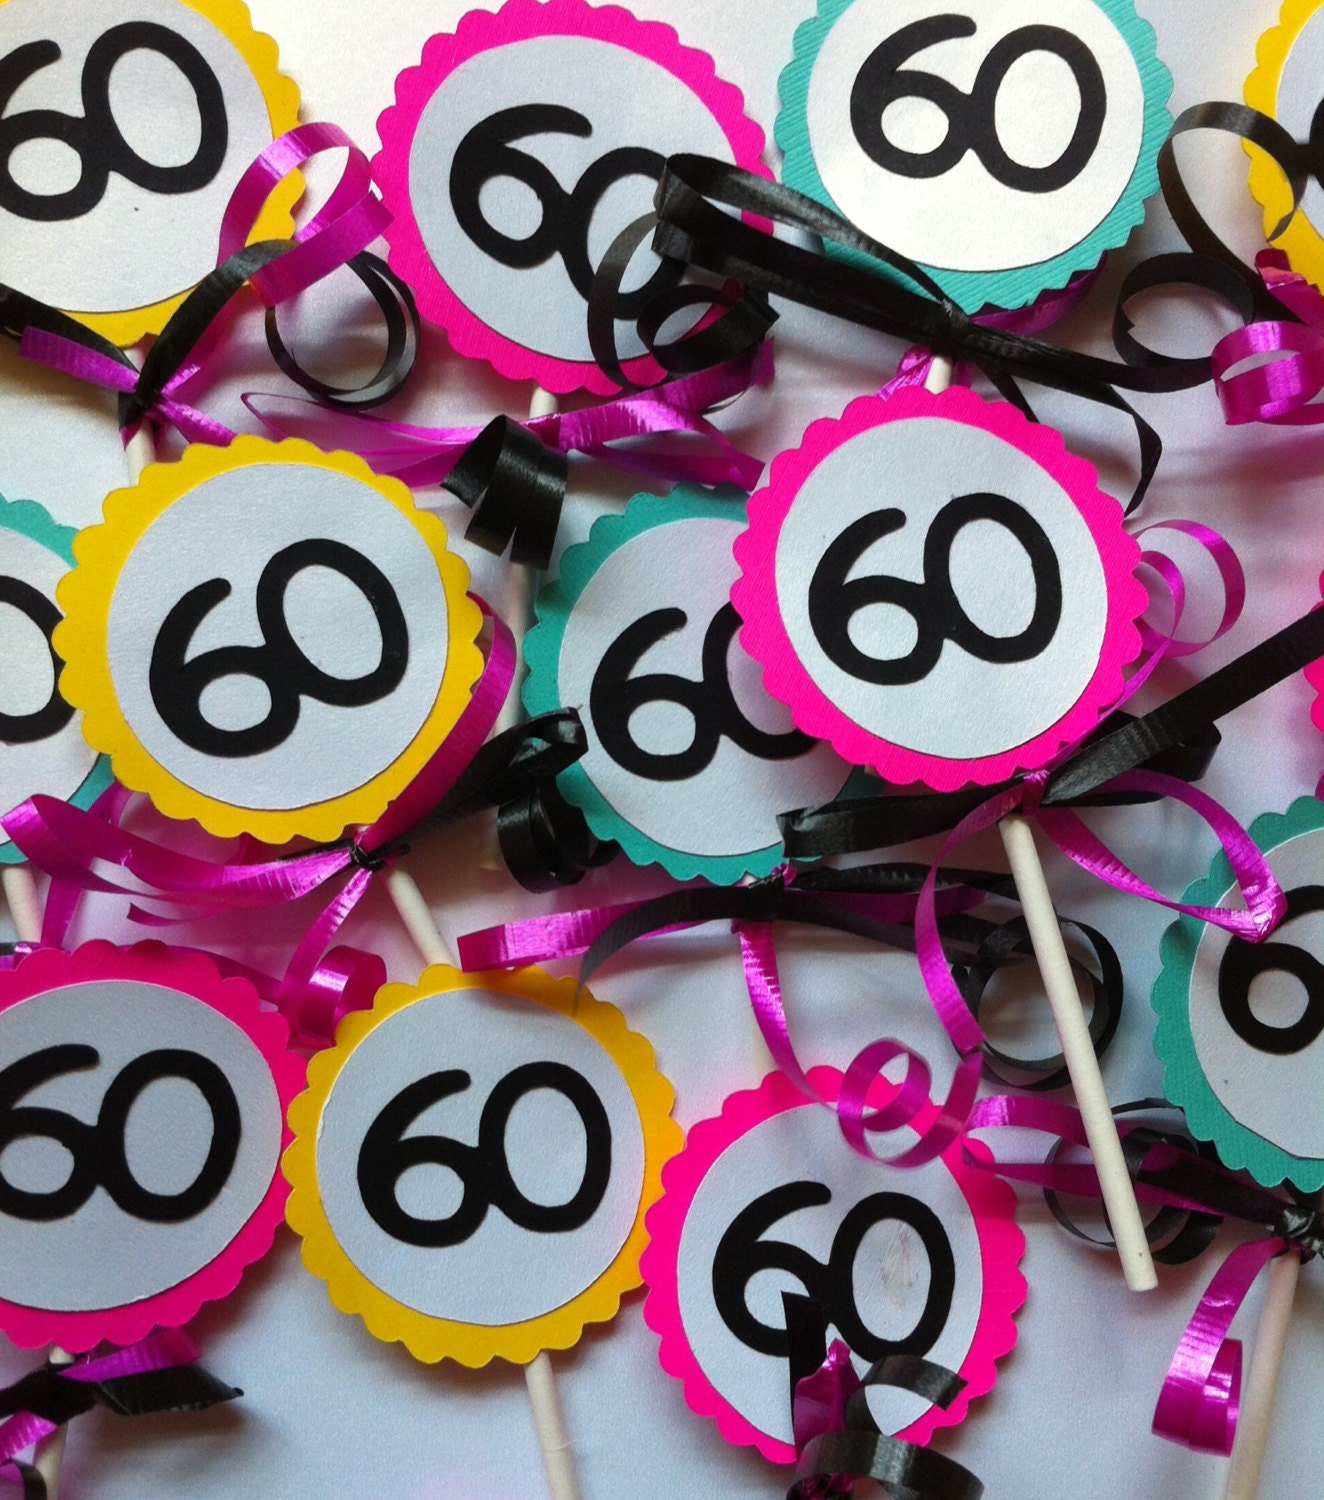 Cupcake Decorating Ideas For 60th Birthday : 60th Birthday Decorations Cupcake Toppers